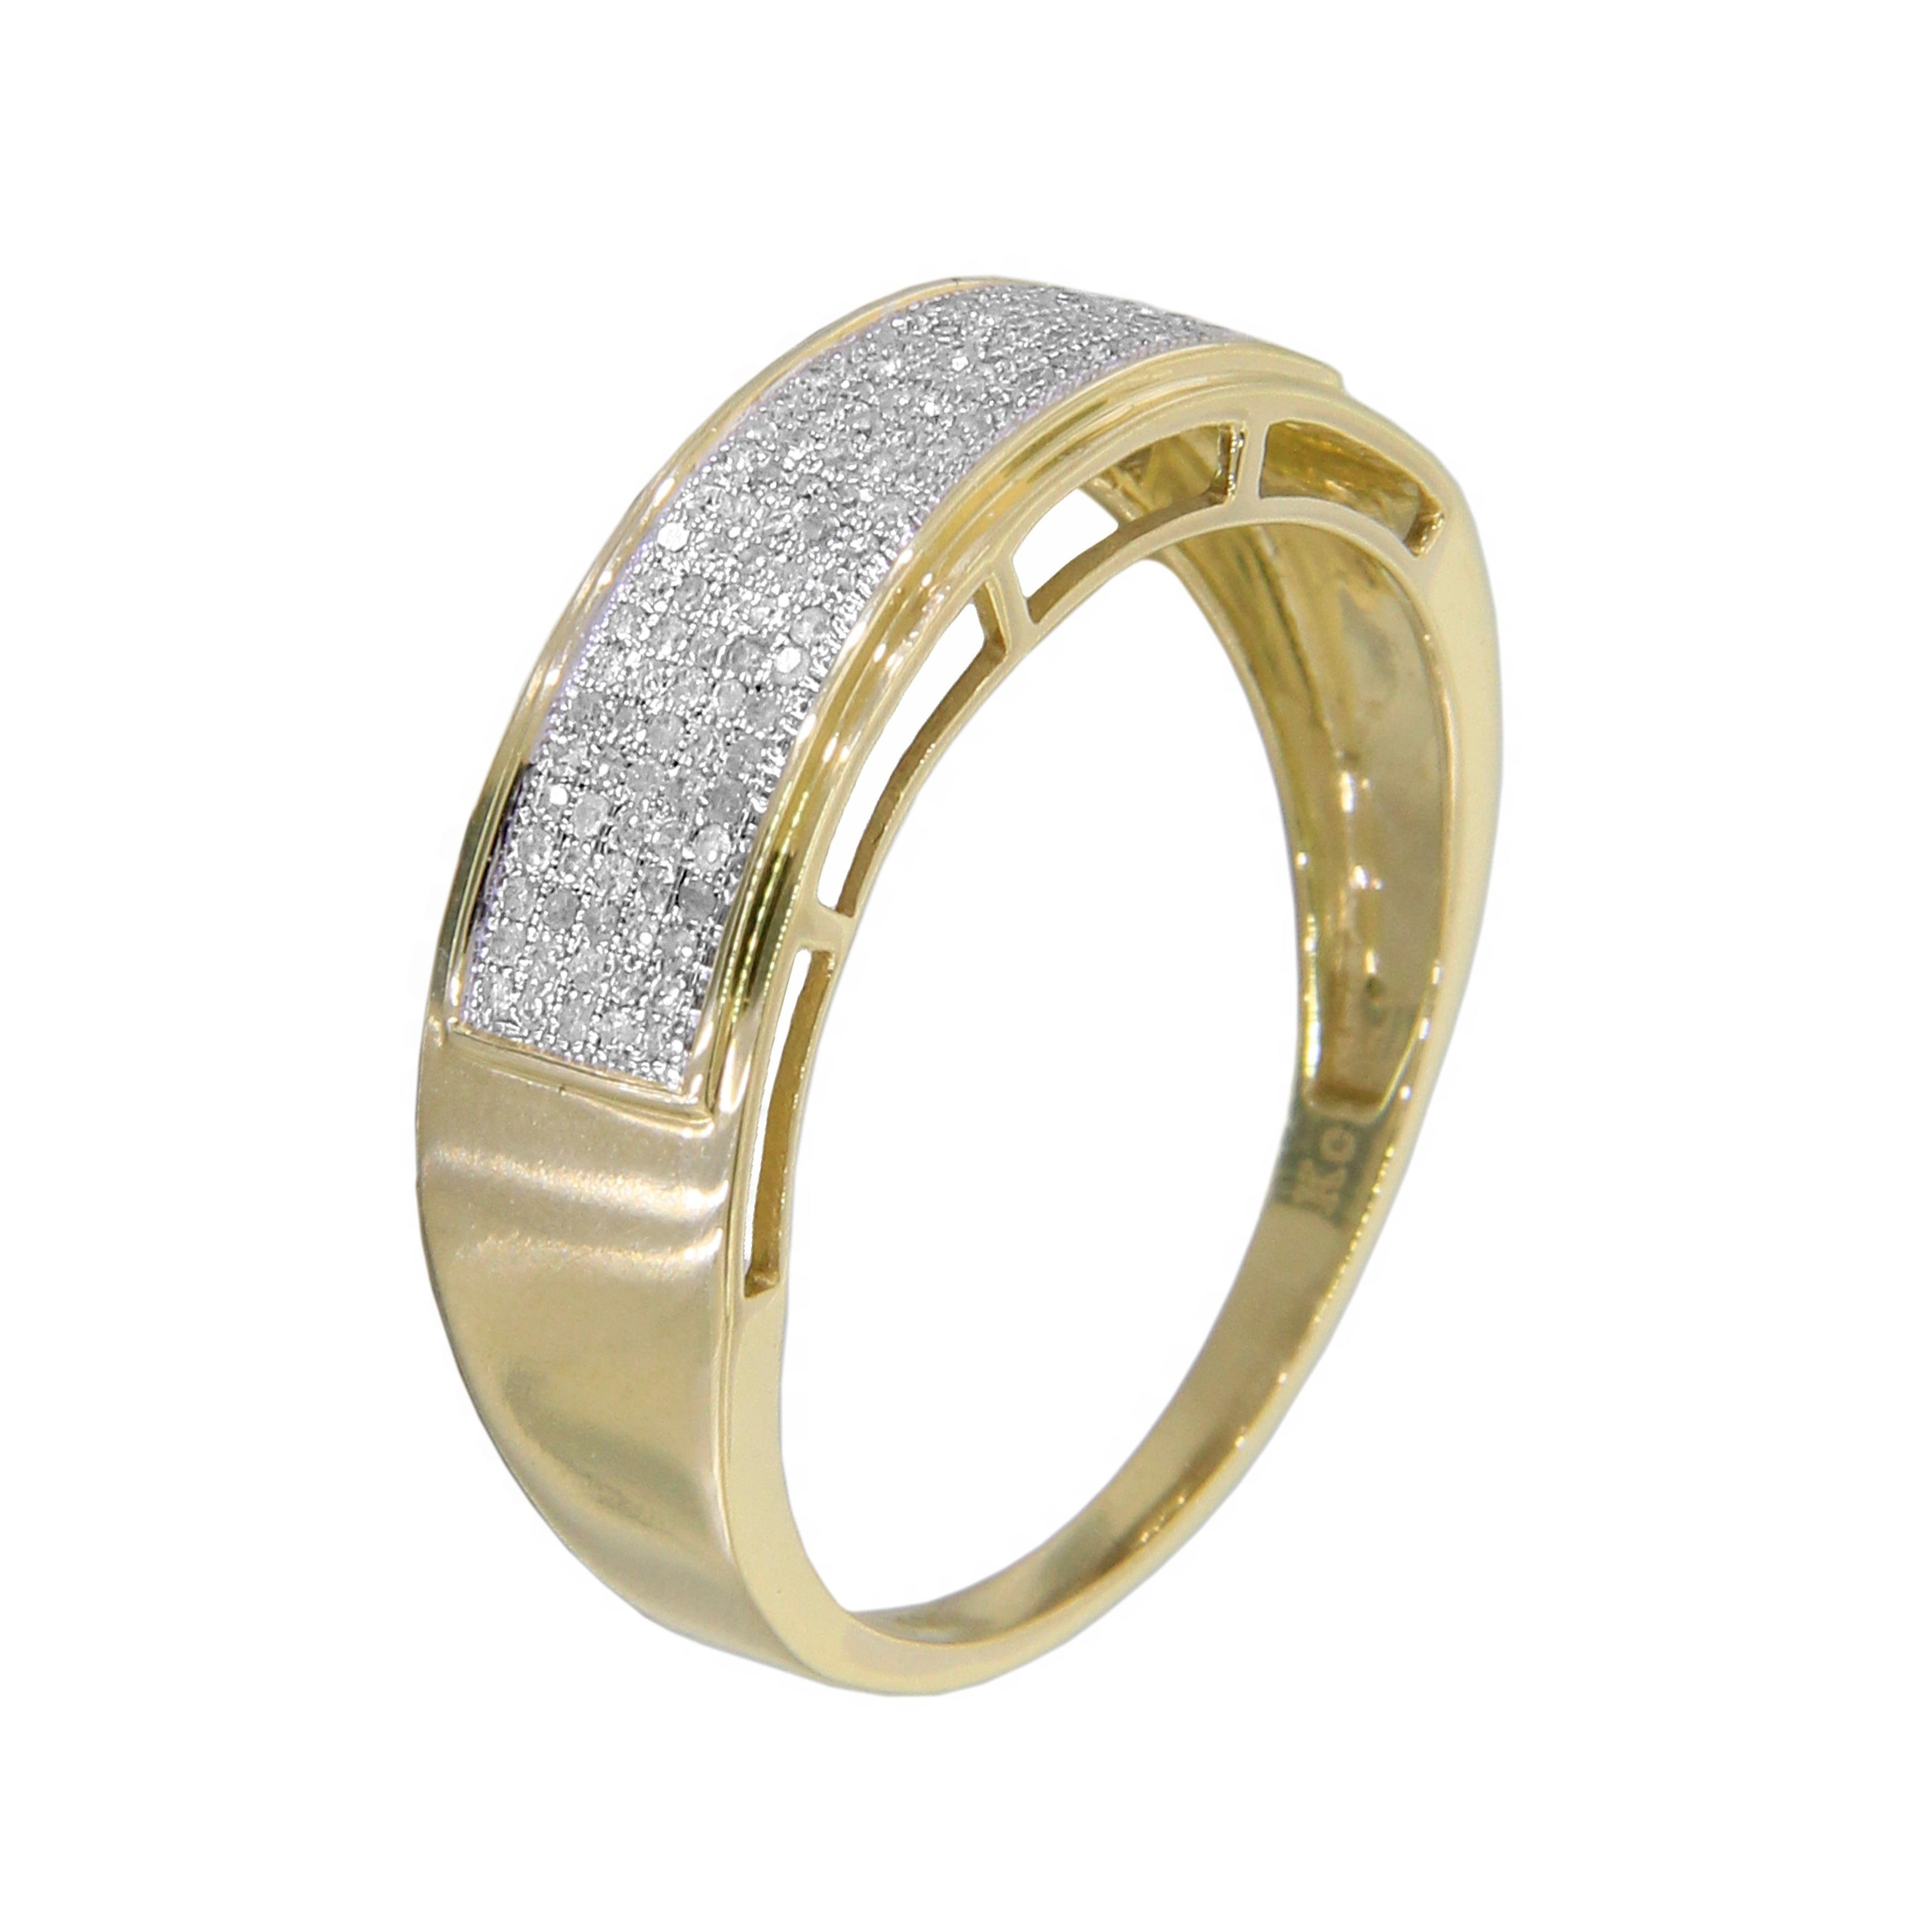 setting in by white for a ring eternity her gold band bands singautre graff signature laurence collections wedding